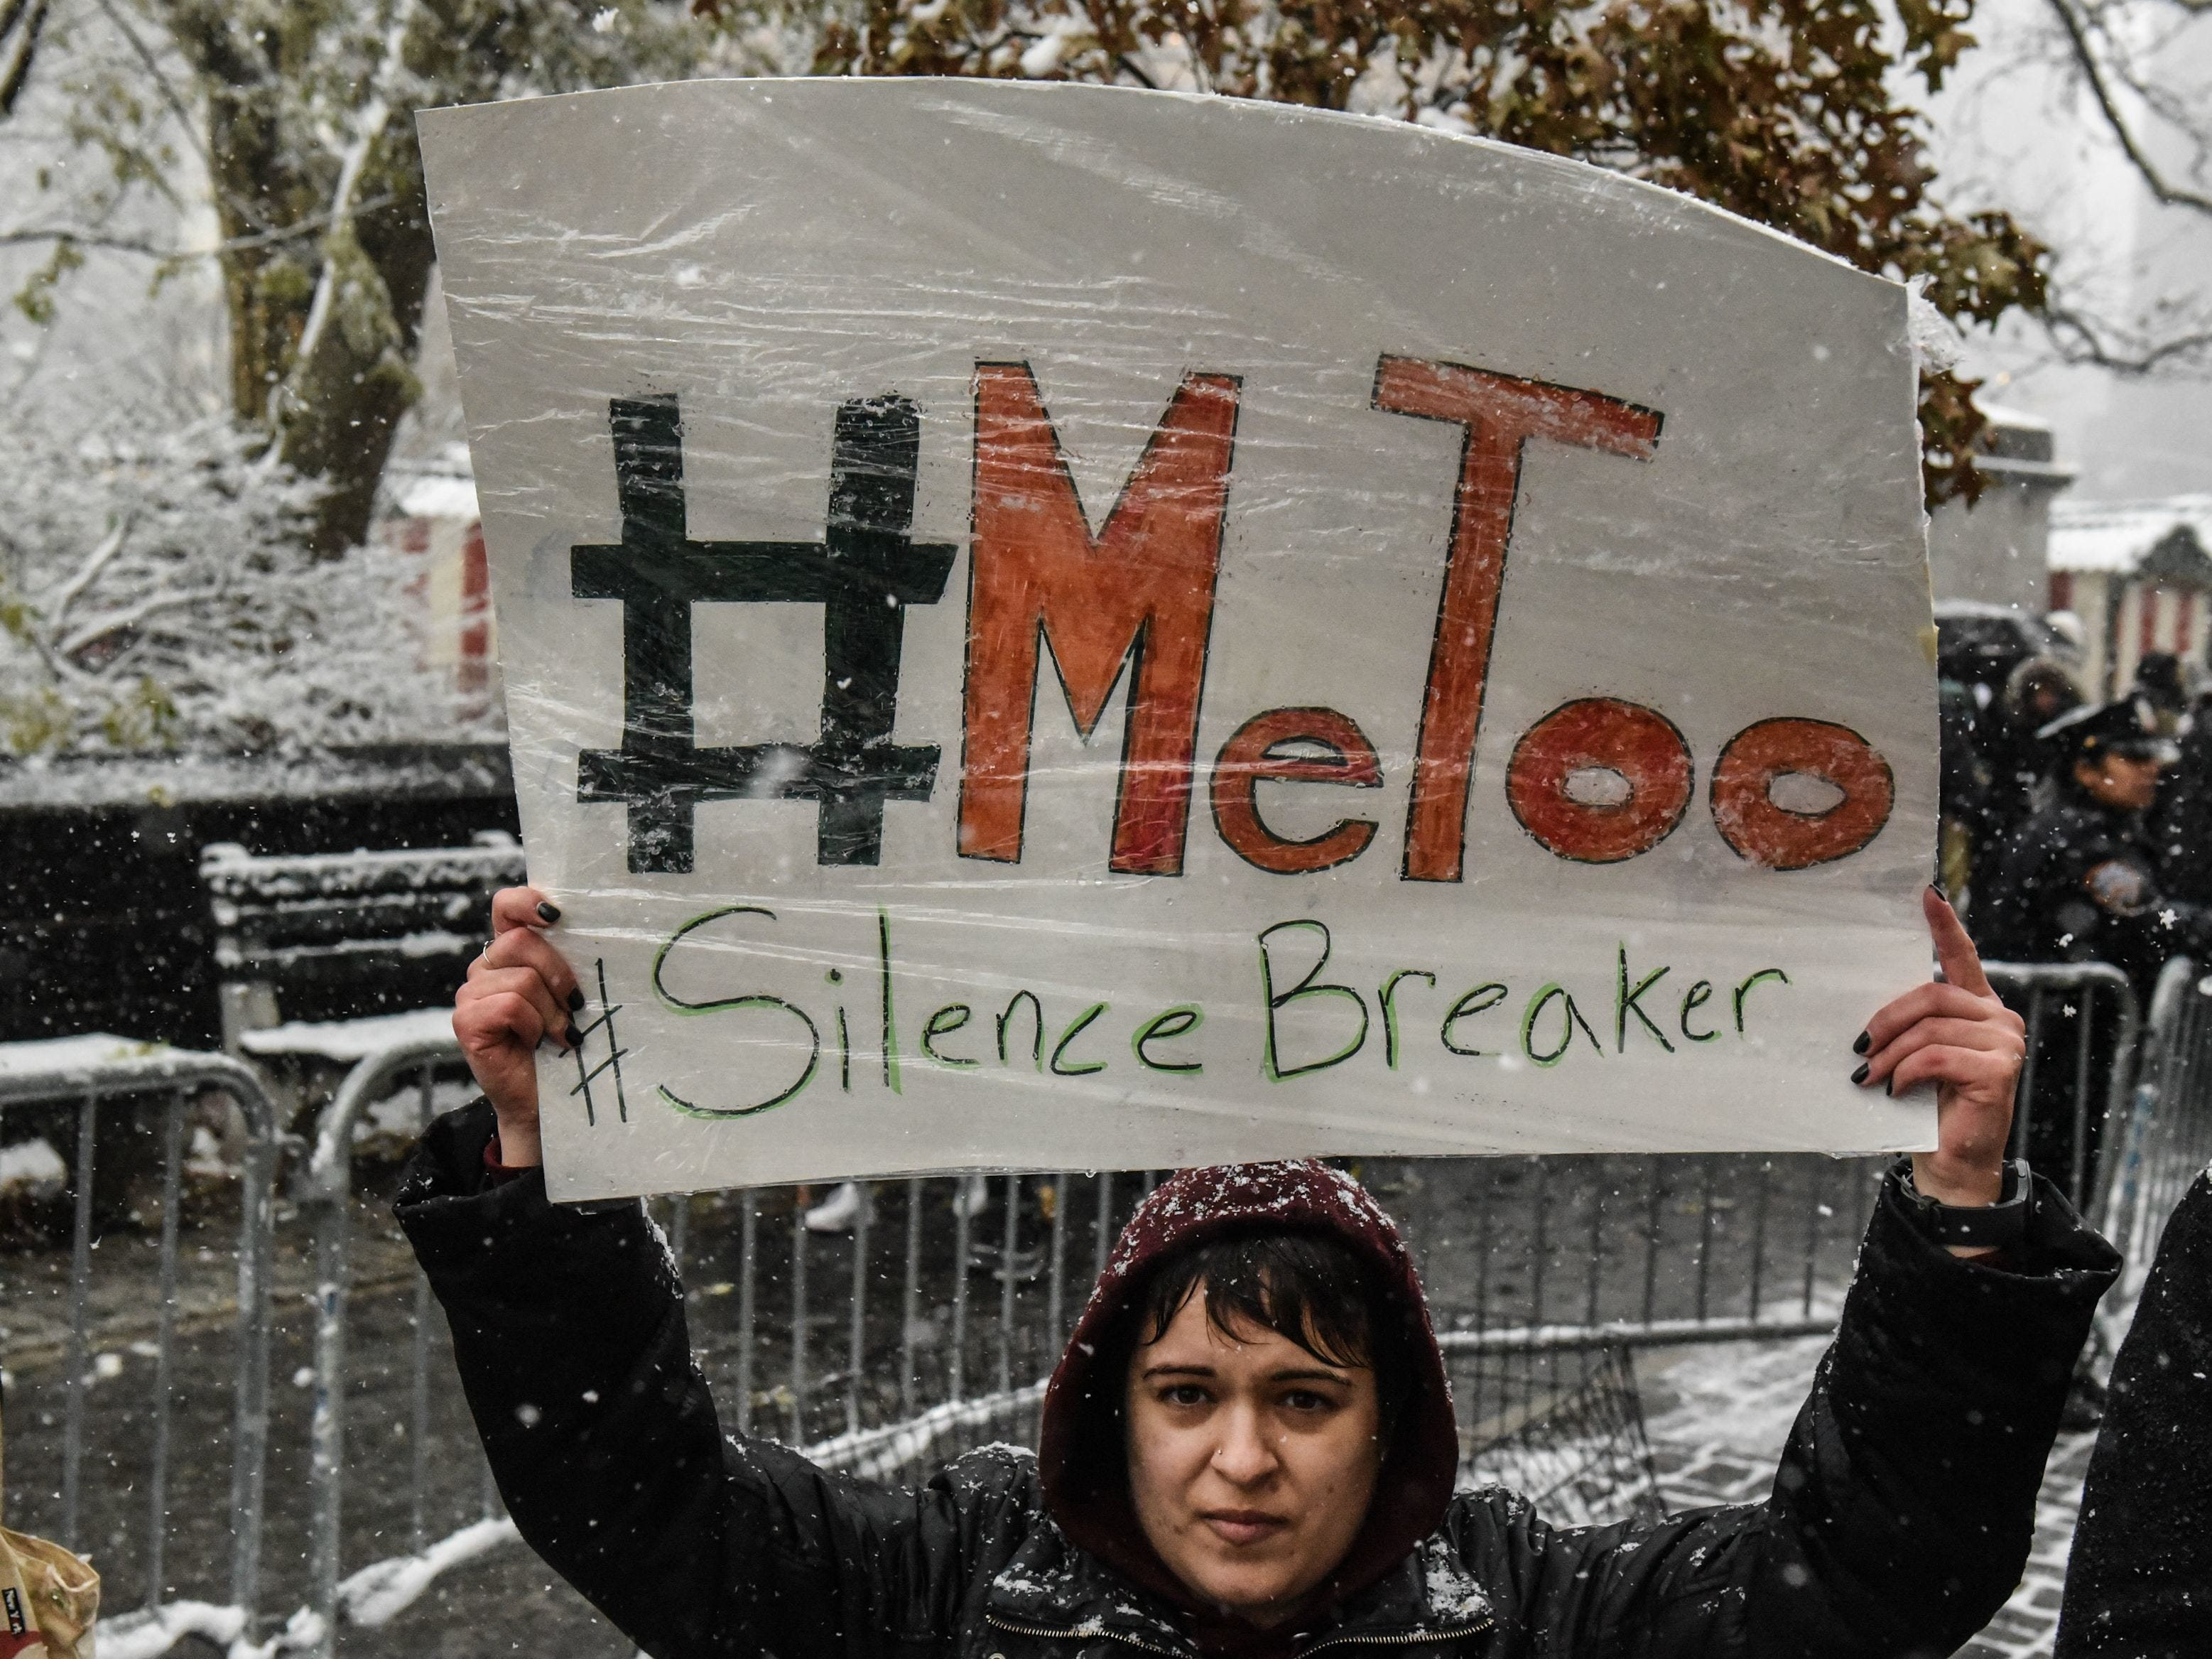 People protest sexual harassment at a #MeToo rally outside Trump International Hotel on Dec.9.   Photos by Getty Images People carry signs addressing the issue of sexual harassment at a #MeToo rally outside of Trump International Hotel on December 9, 2017.